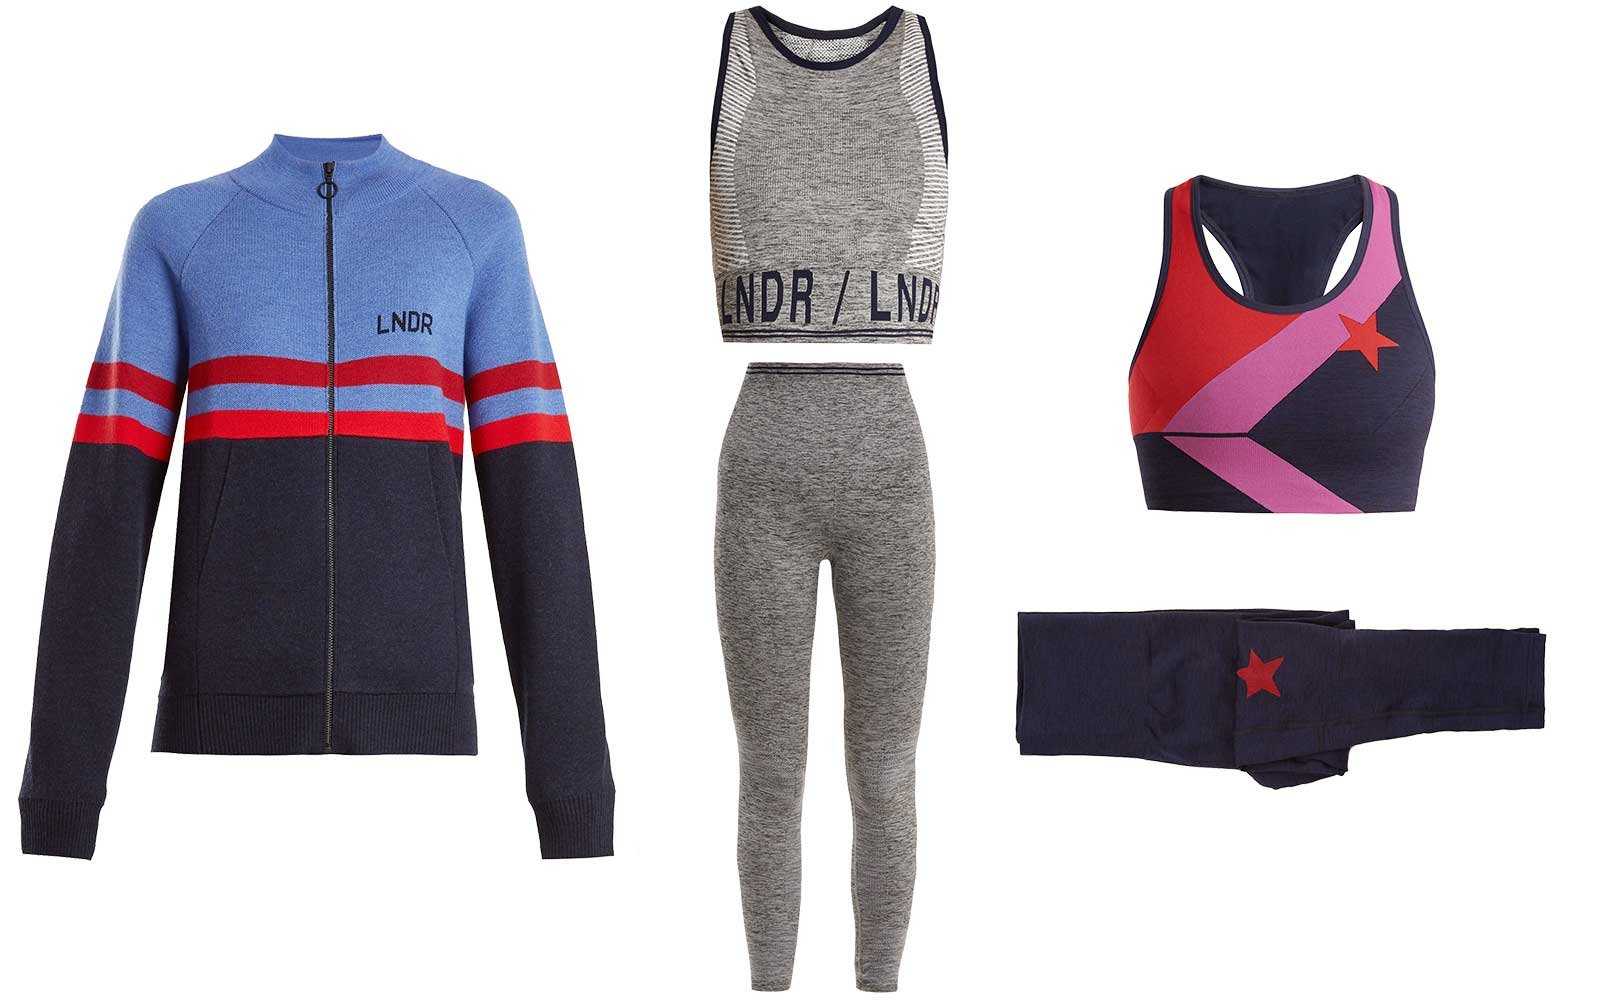 Retro activewear by LNDR